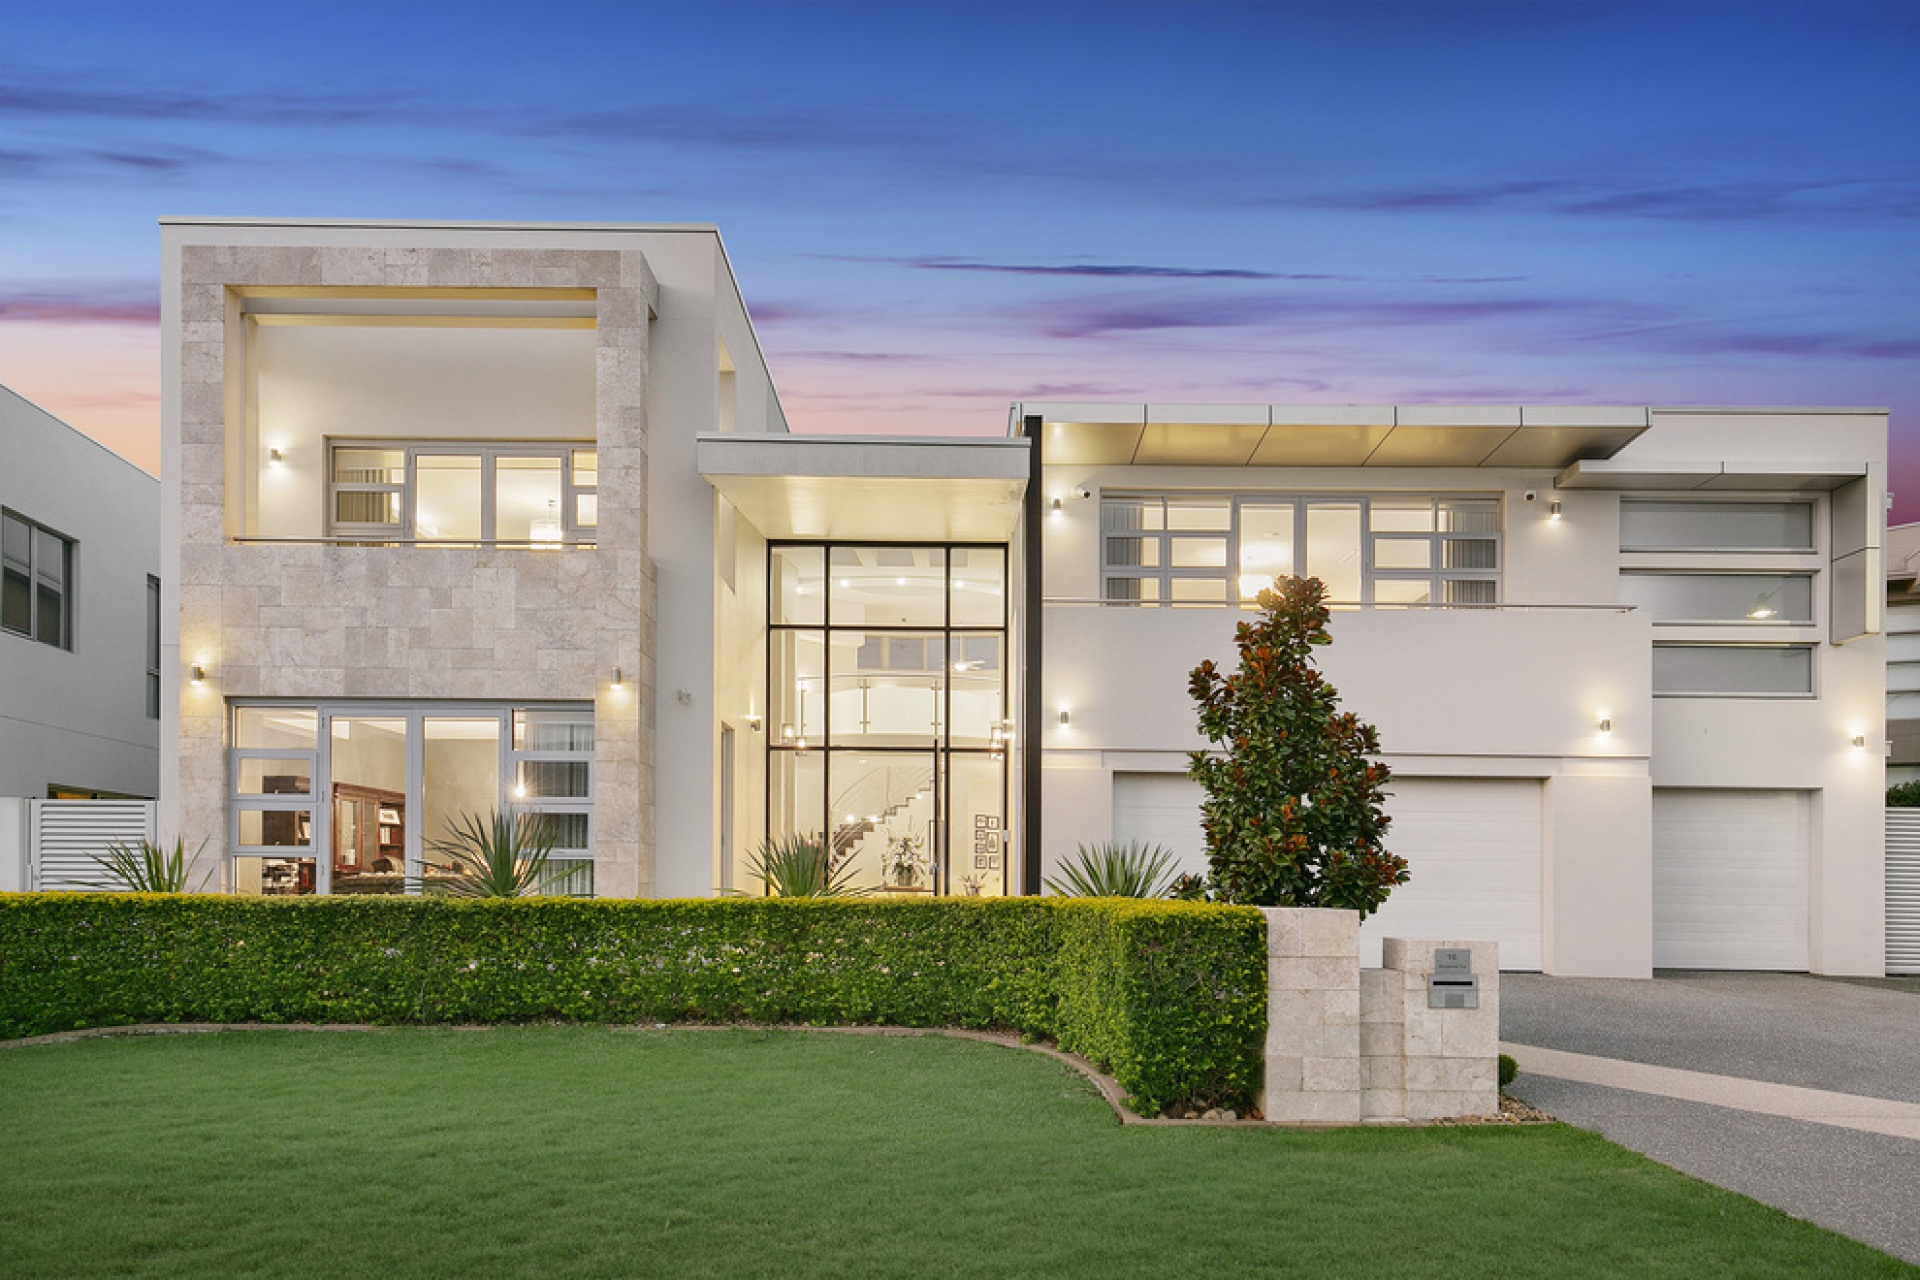 5 Rooms, House, Sold , Stonybrook Terrace, 6 Bathrooms, Listing ID 1280, BELLA VISTA, NSW, Australia,